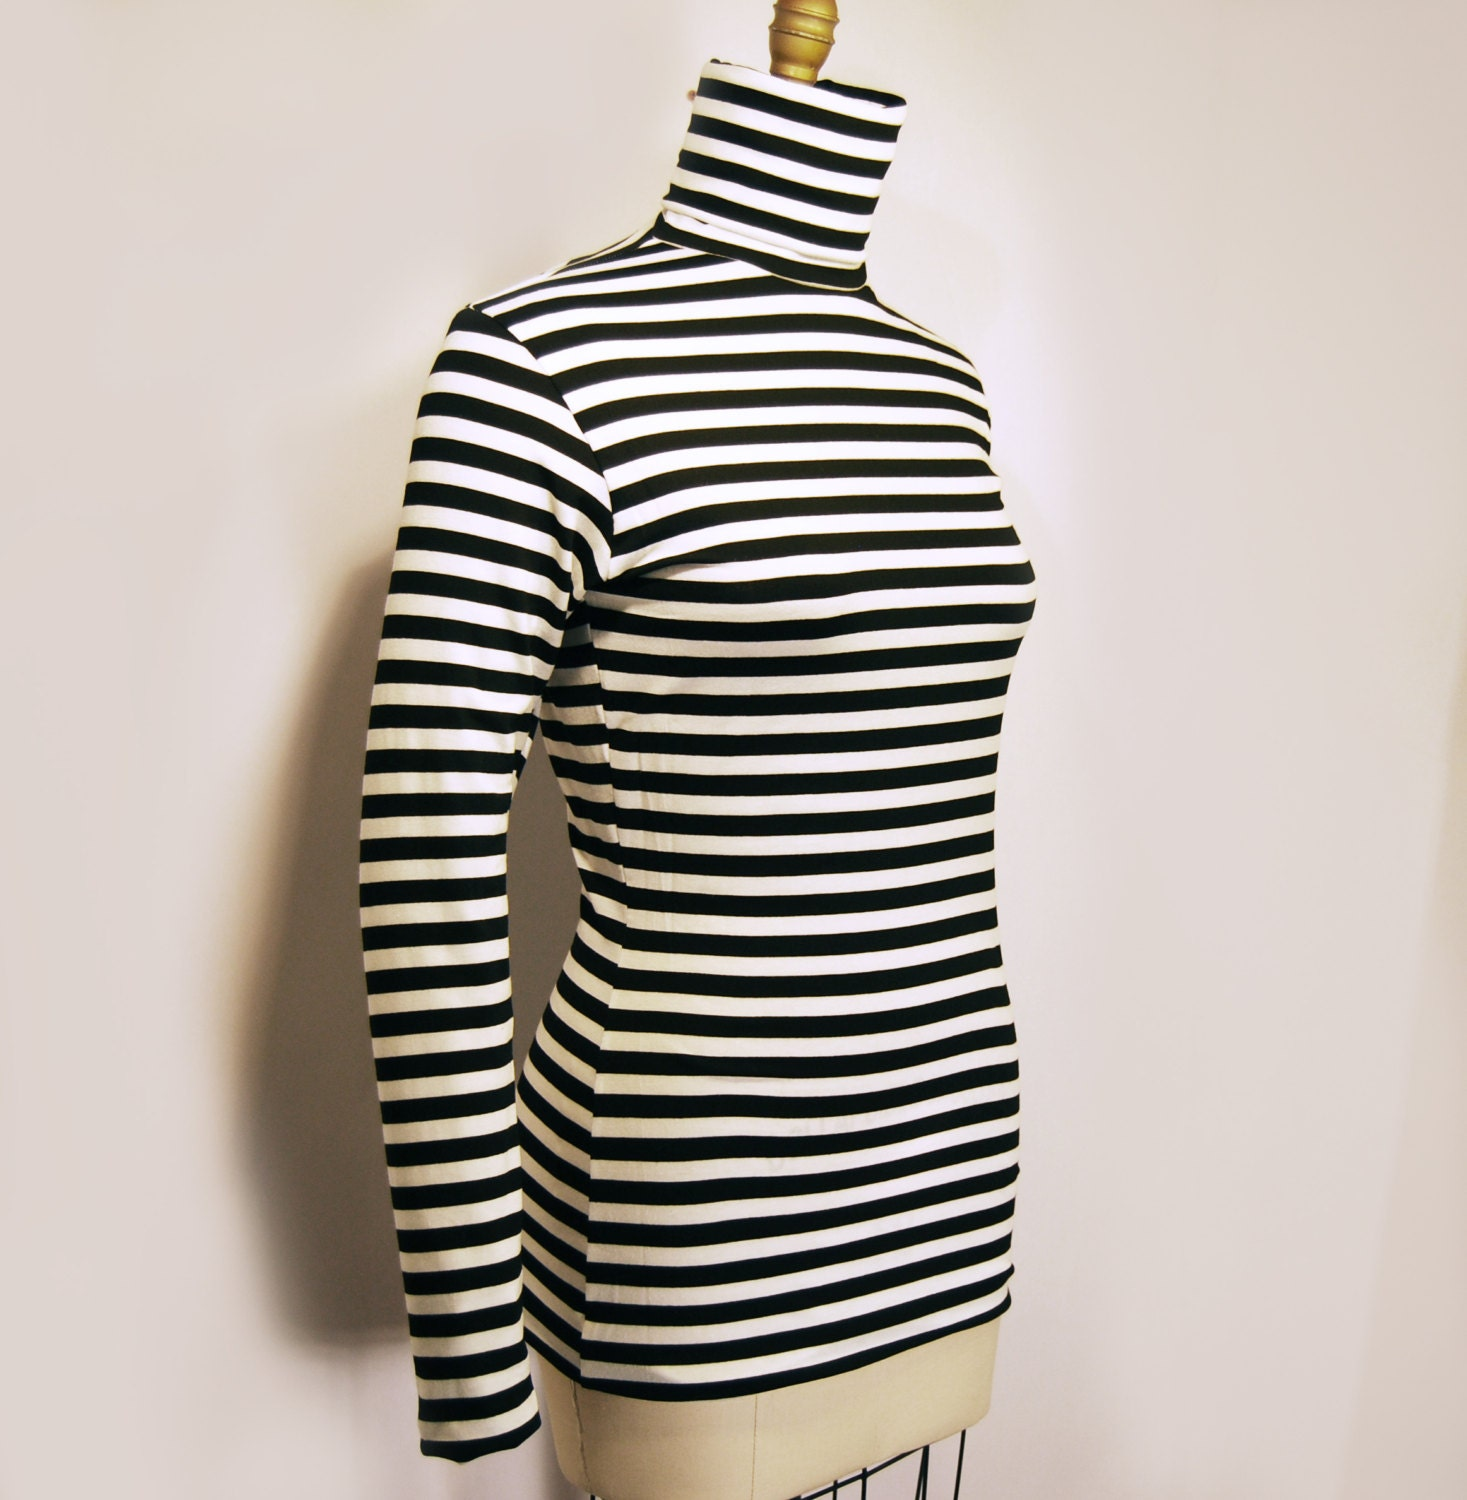 Details about Cabi Fergie Sweater Small Black White Striped Cowl Turtleneck Split Drape. Cabi Fergie Sweater Small Black White Striped Cowl Turtleneck Split Drape | Add to watch list. Find out more about the Top-Rated Seller program - opens in a new window or tab.